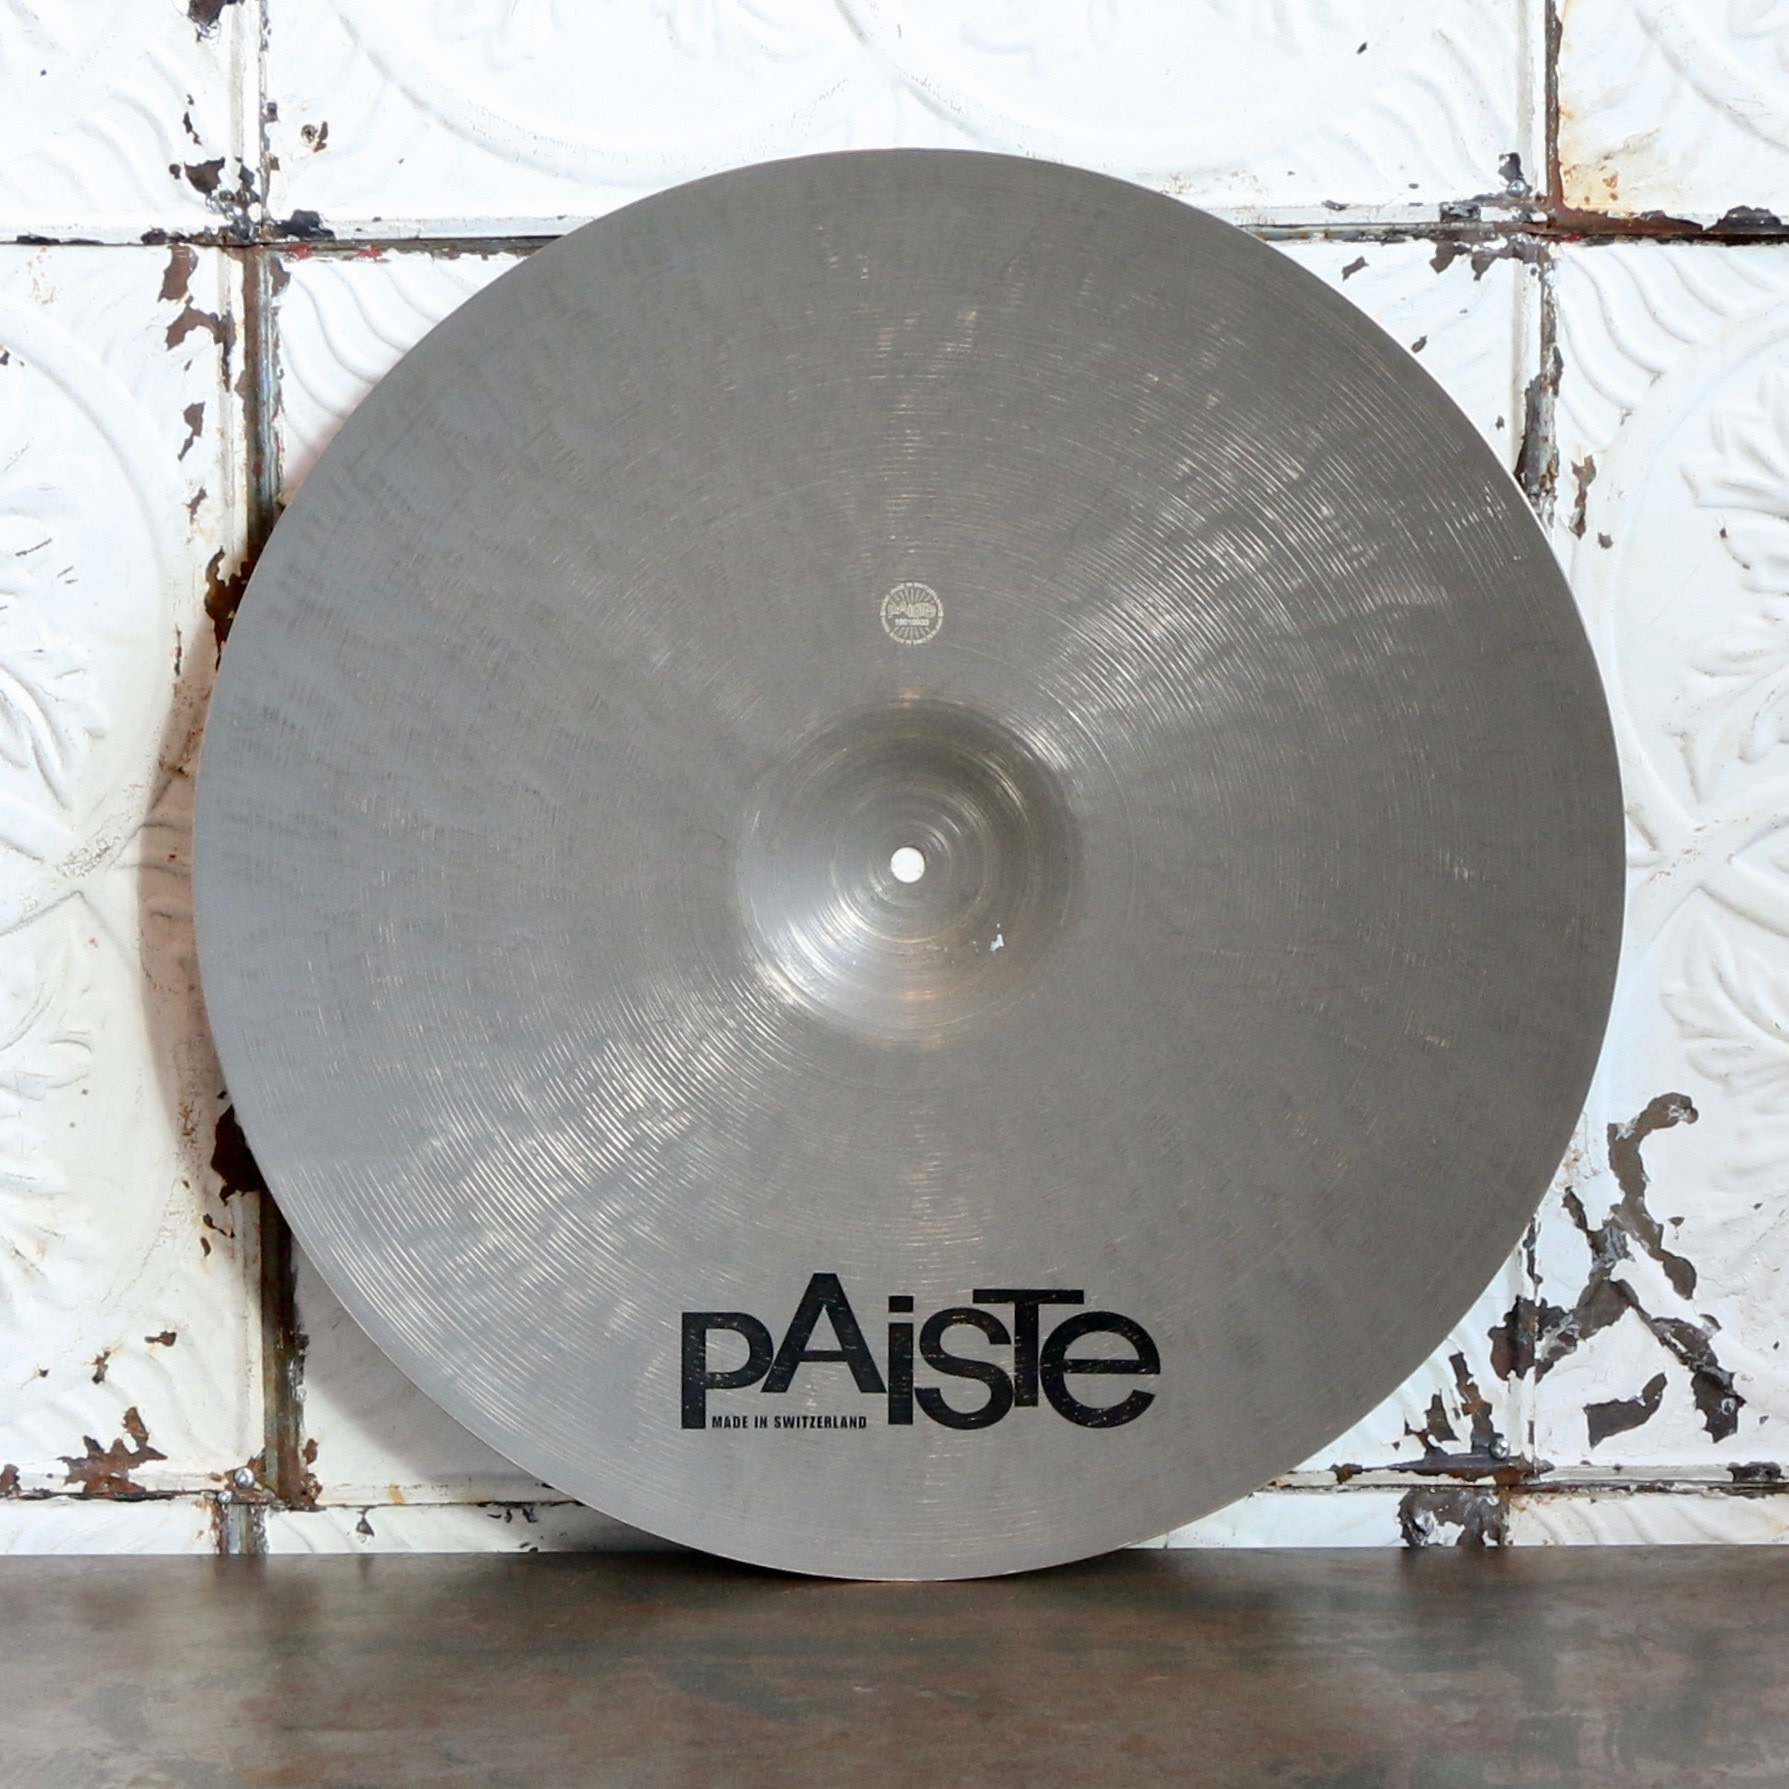 Paiste Used Paiste Masters Dry Ride Cymbal 21in